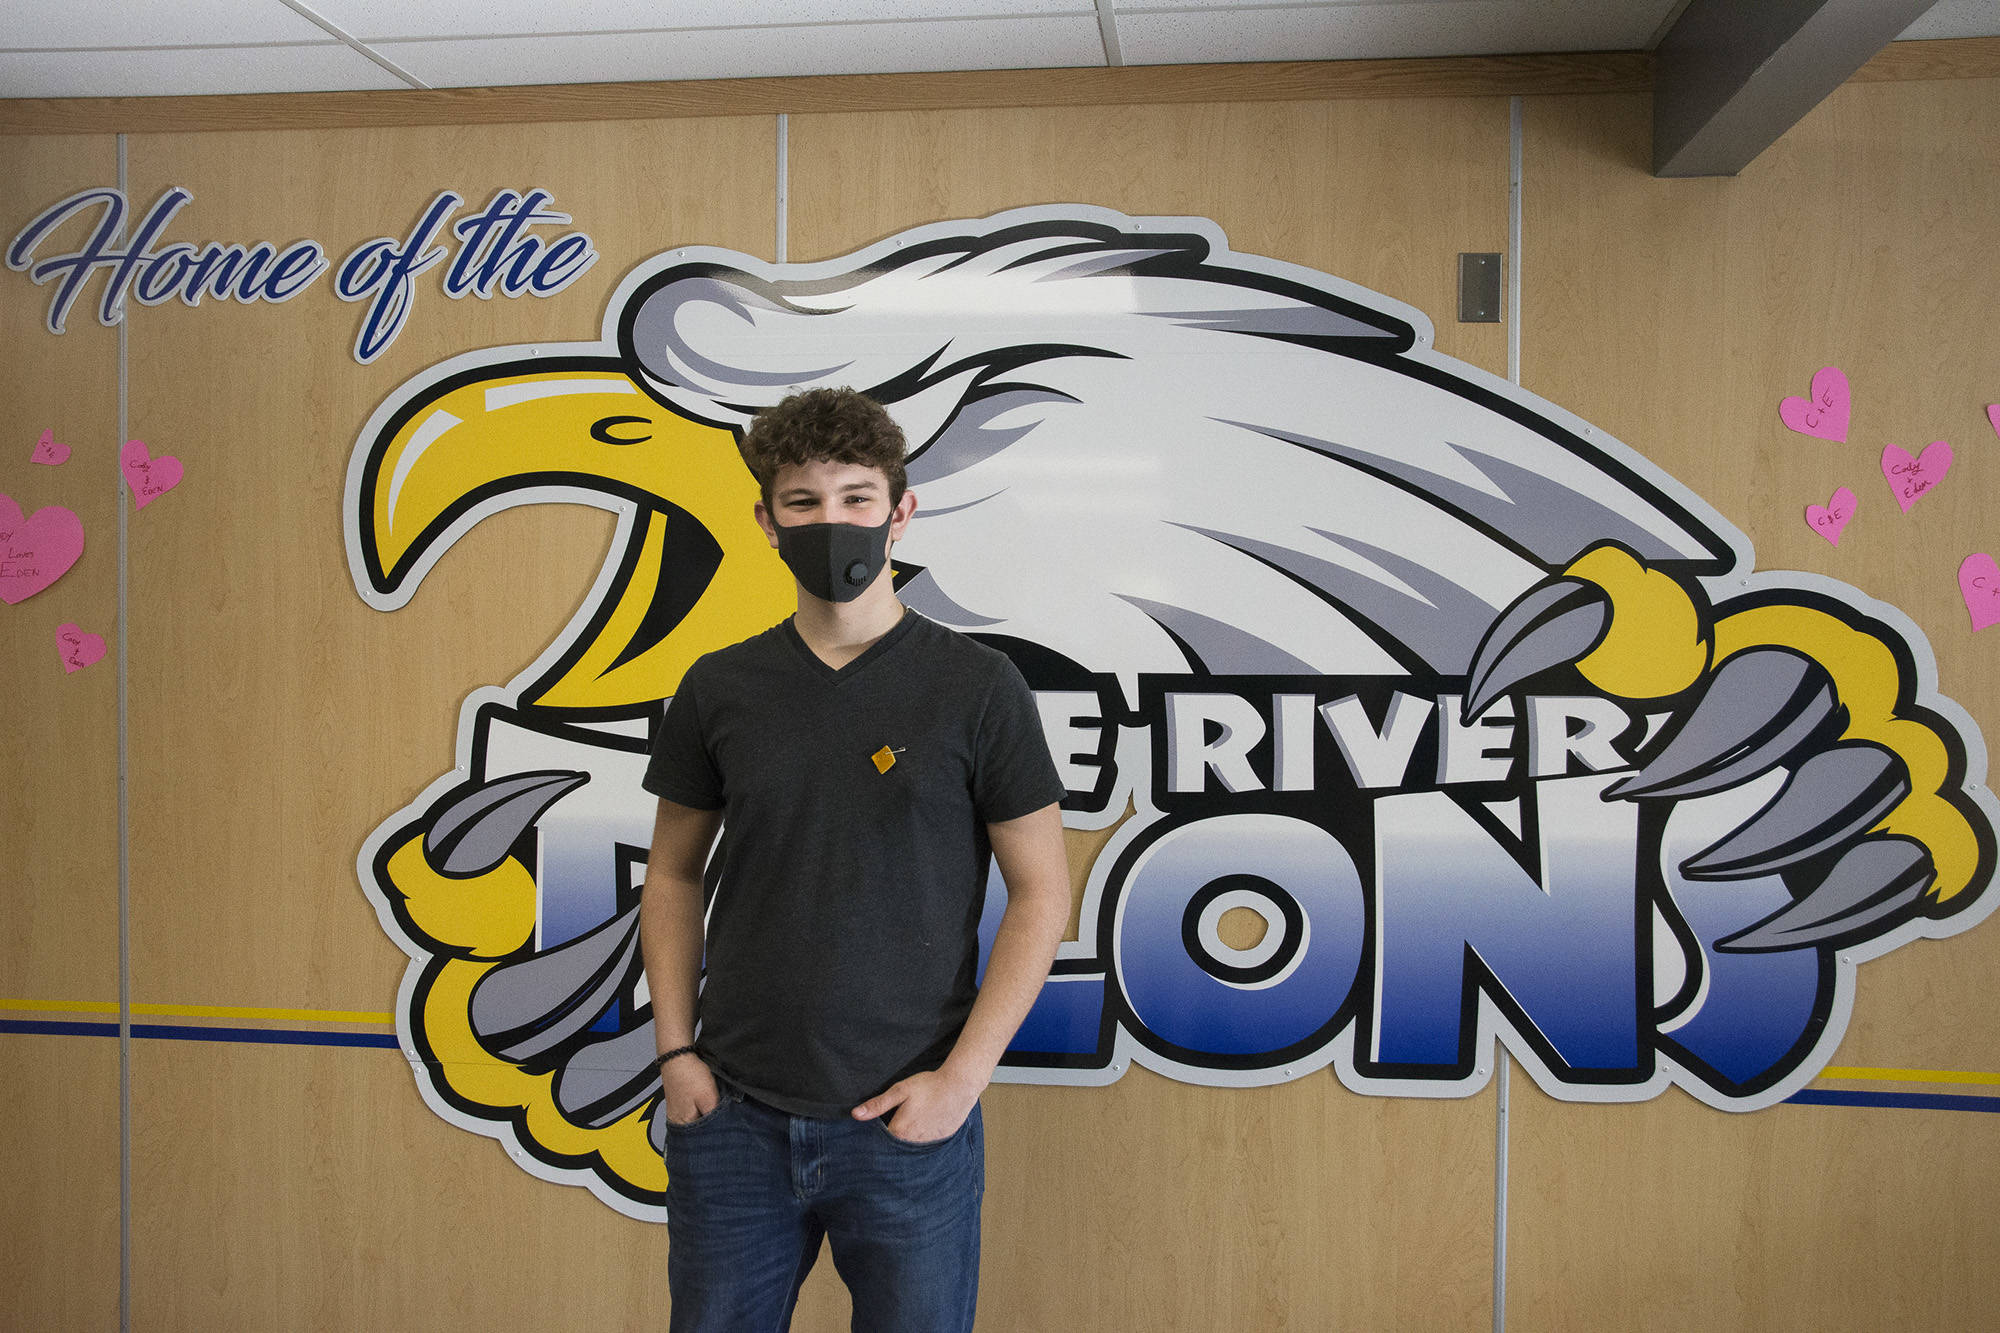 Cody Hutchinson, a Grade 9 Student at Eagle River Secondary in Sicamous, organized a cellphone detox for his classmates, which ended on Thursday, Feb. 11. (Jim Elliot - Eagle Valley News)